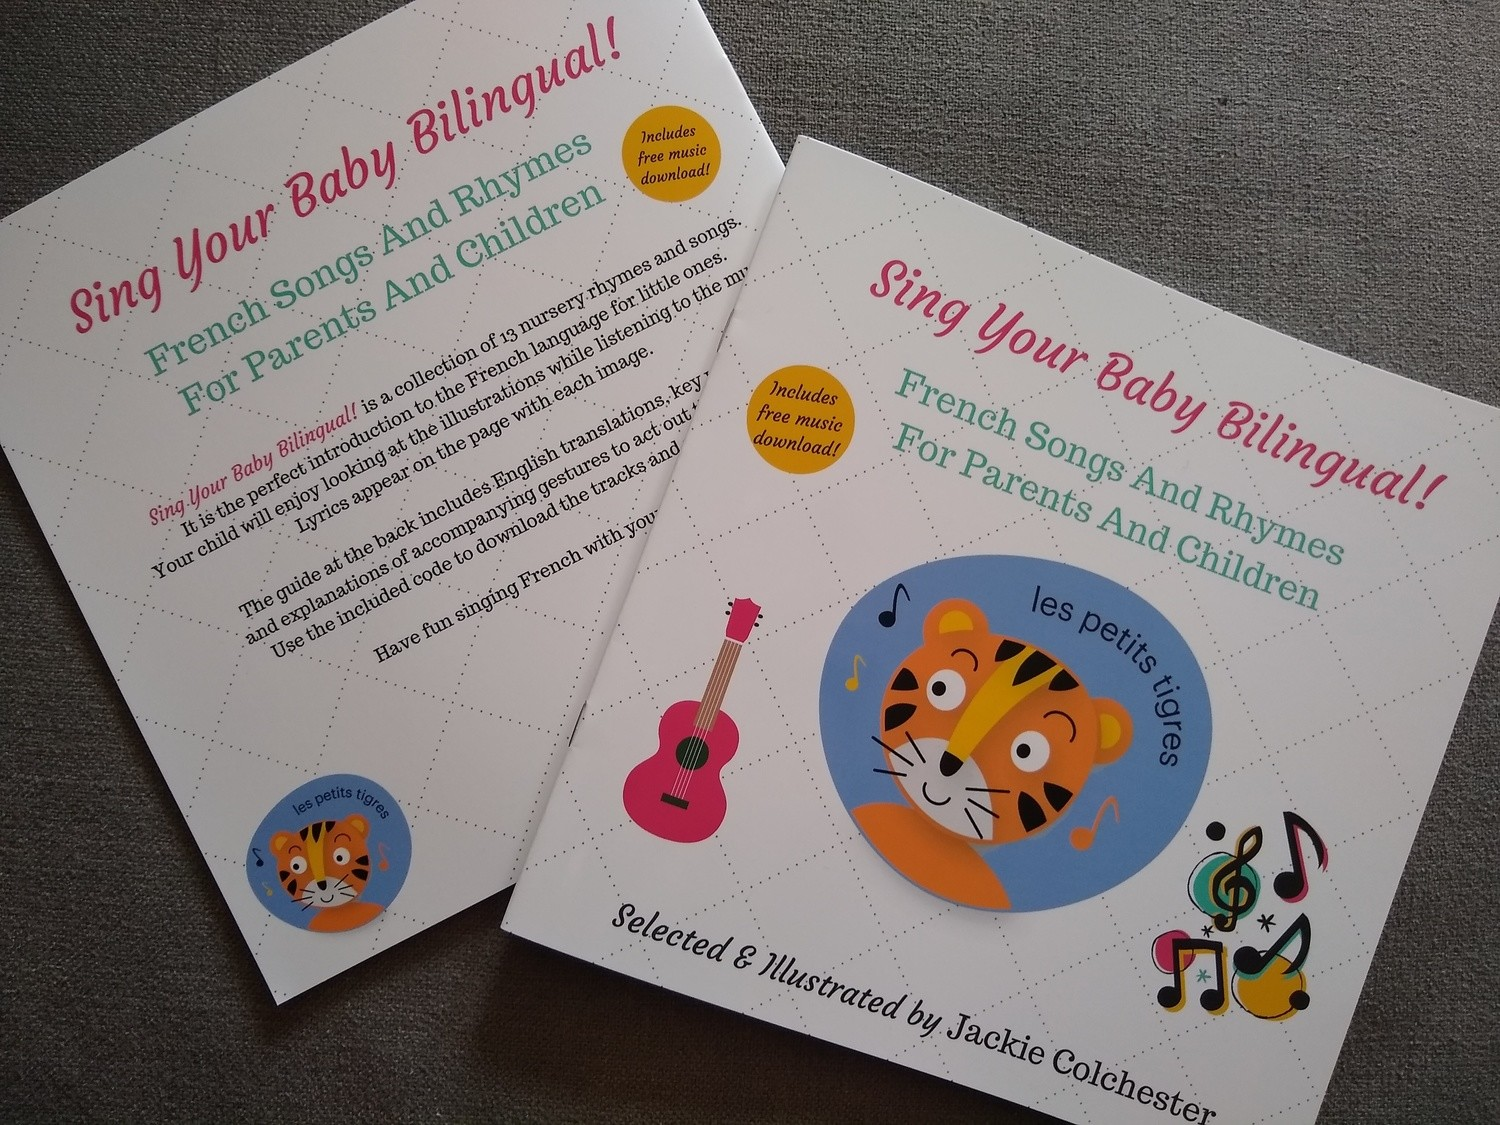 Sing Your Baby Bilingual - French Songs and Rhymes book with CD and free album download